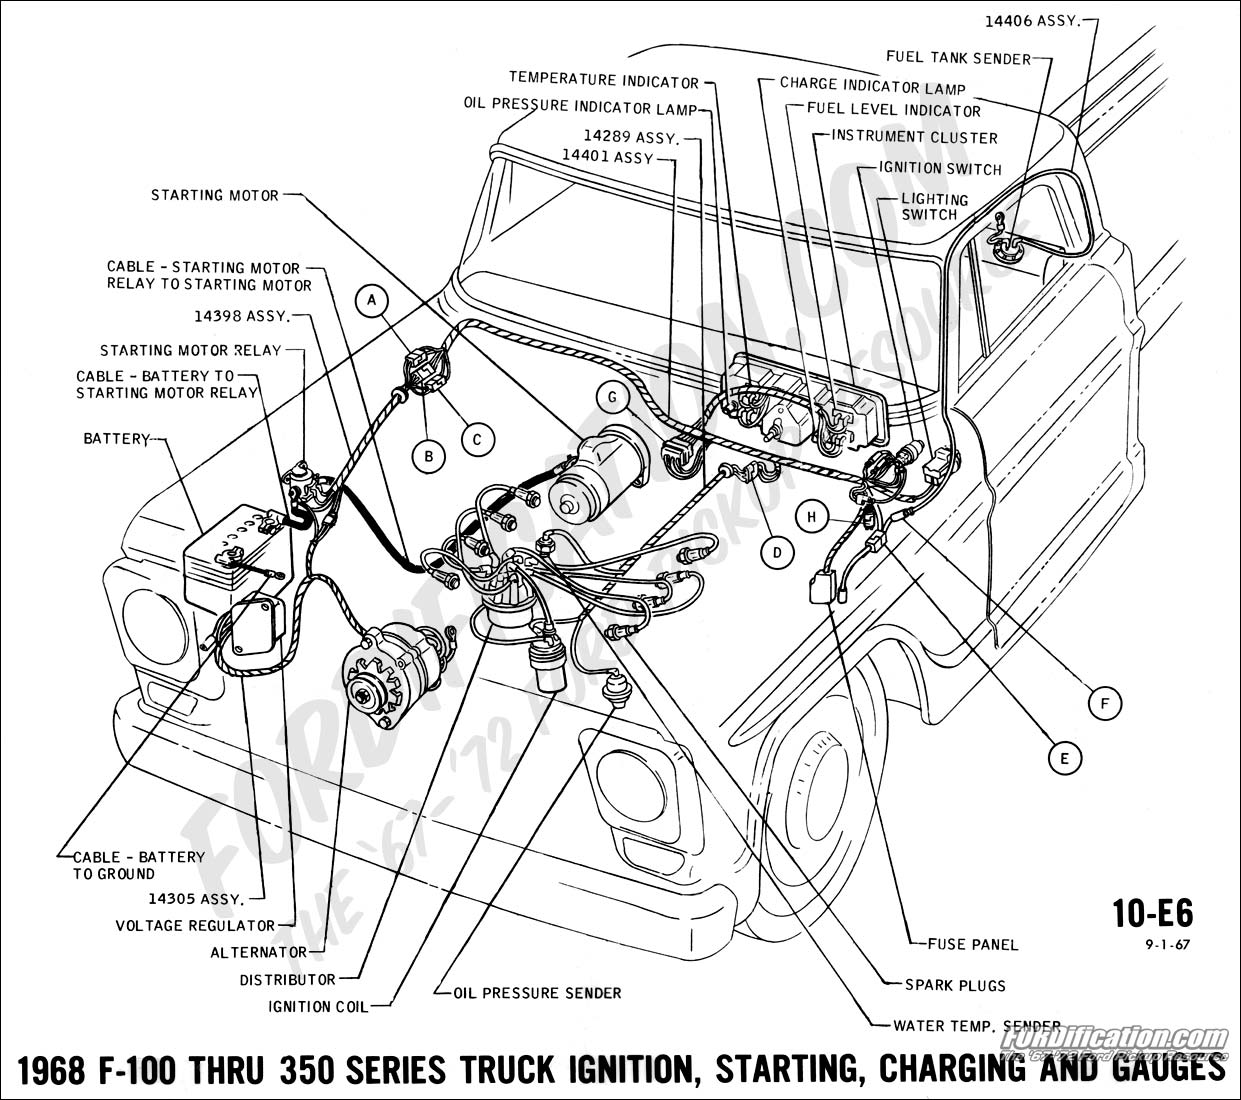 Ford Truck Technical Drawings And Schematics Section H Wiring 1994 F150 Fuse Box Diagram 1968 F 100 Thru 350 Ignition Starting Charging Gauges